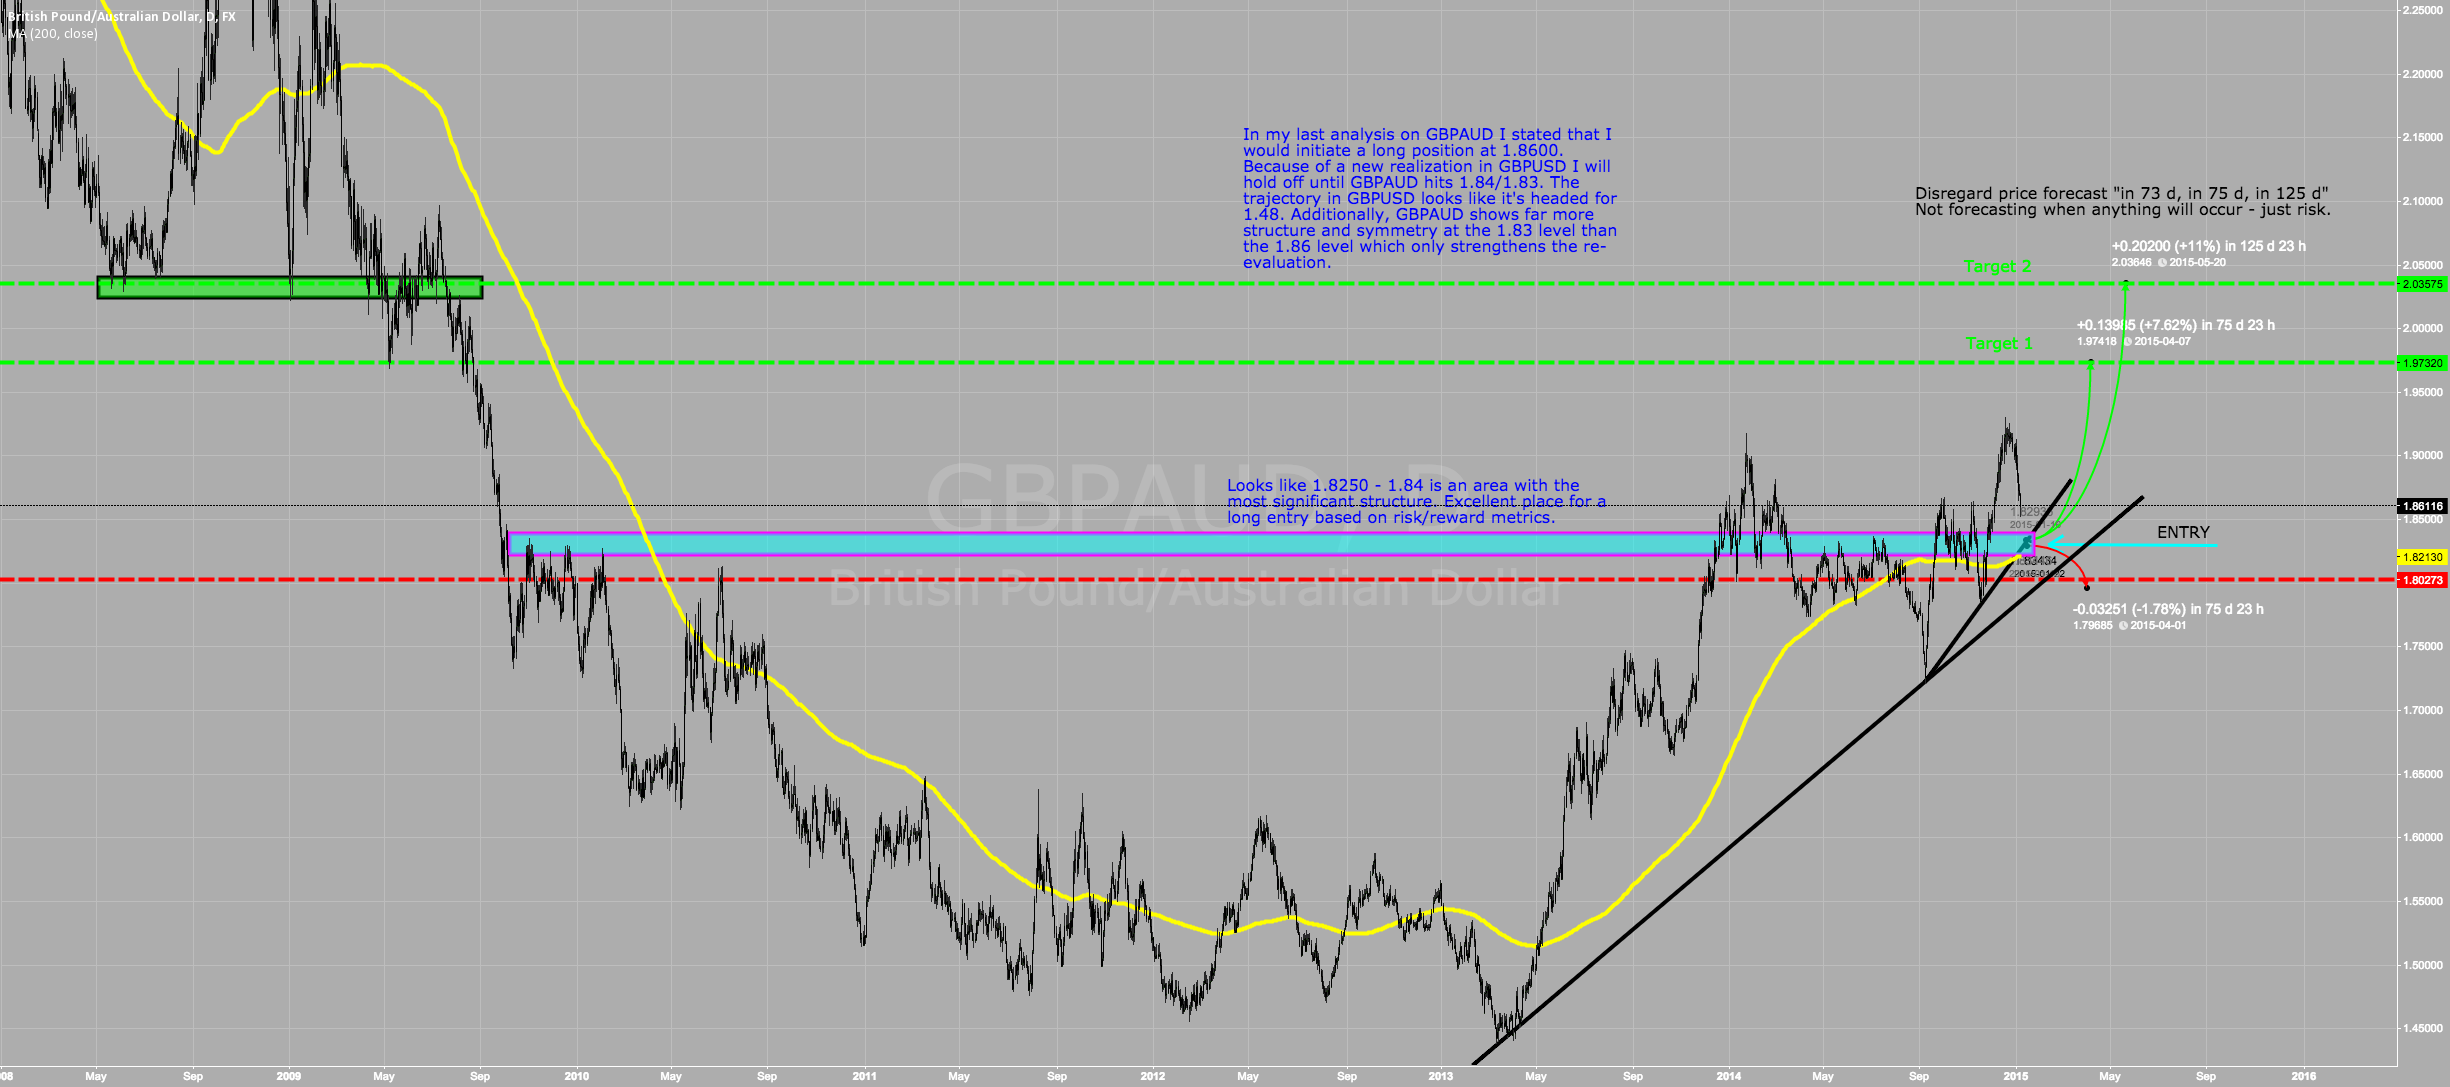 Update on GBPAUD and reevaluation from my previous analysis